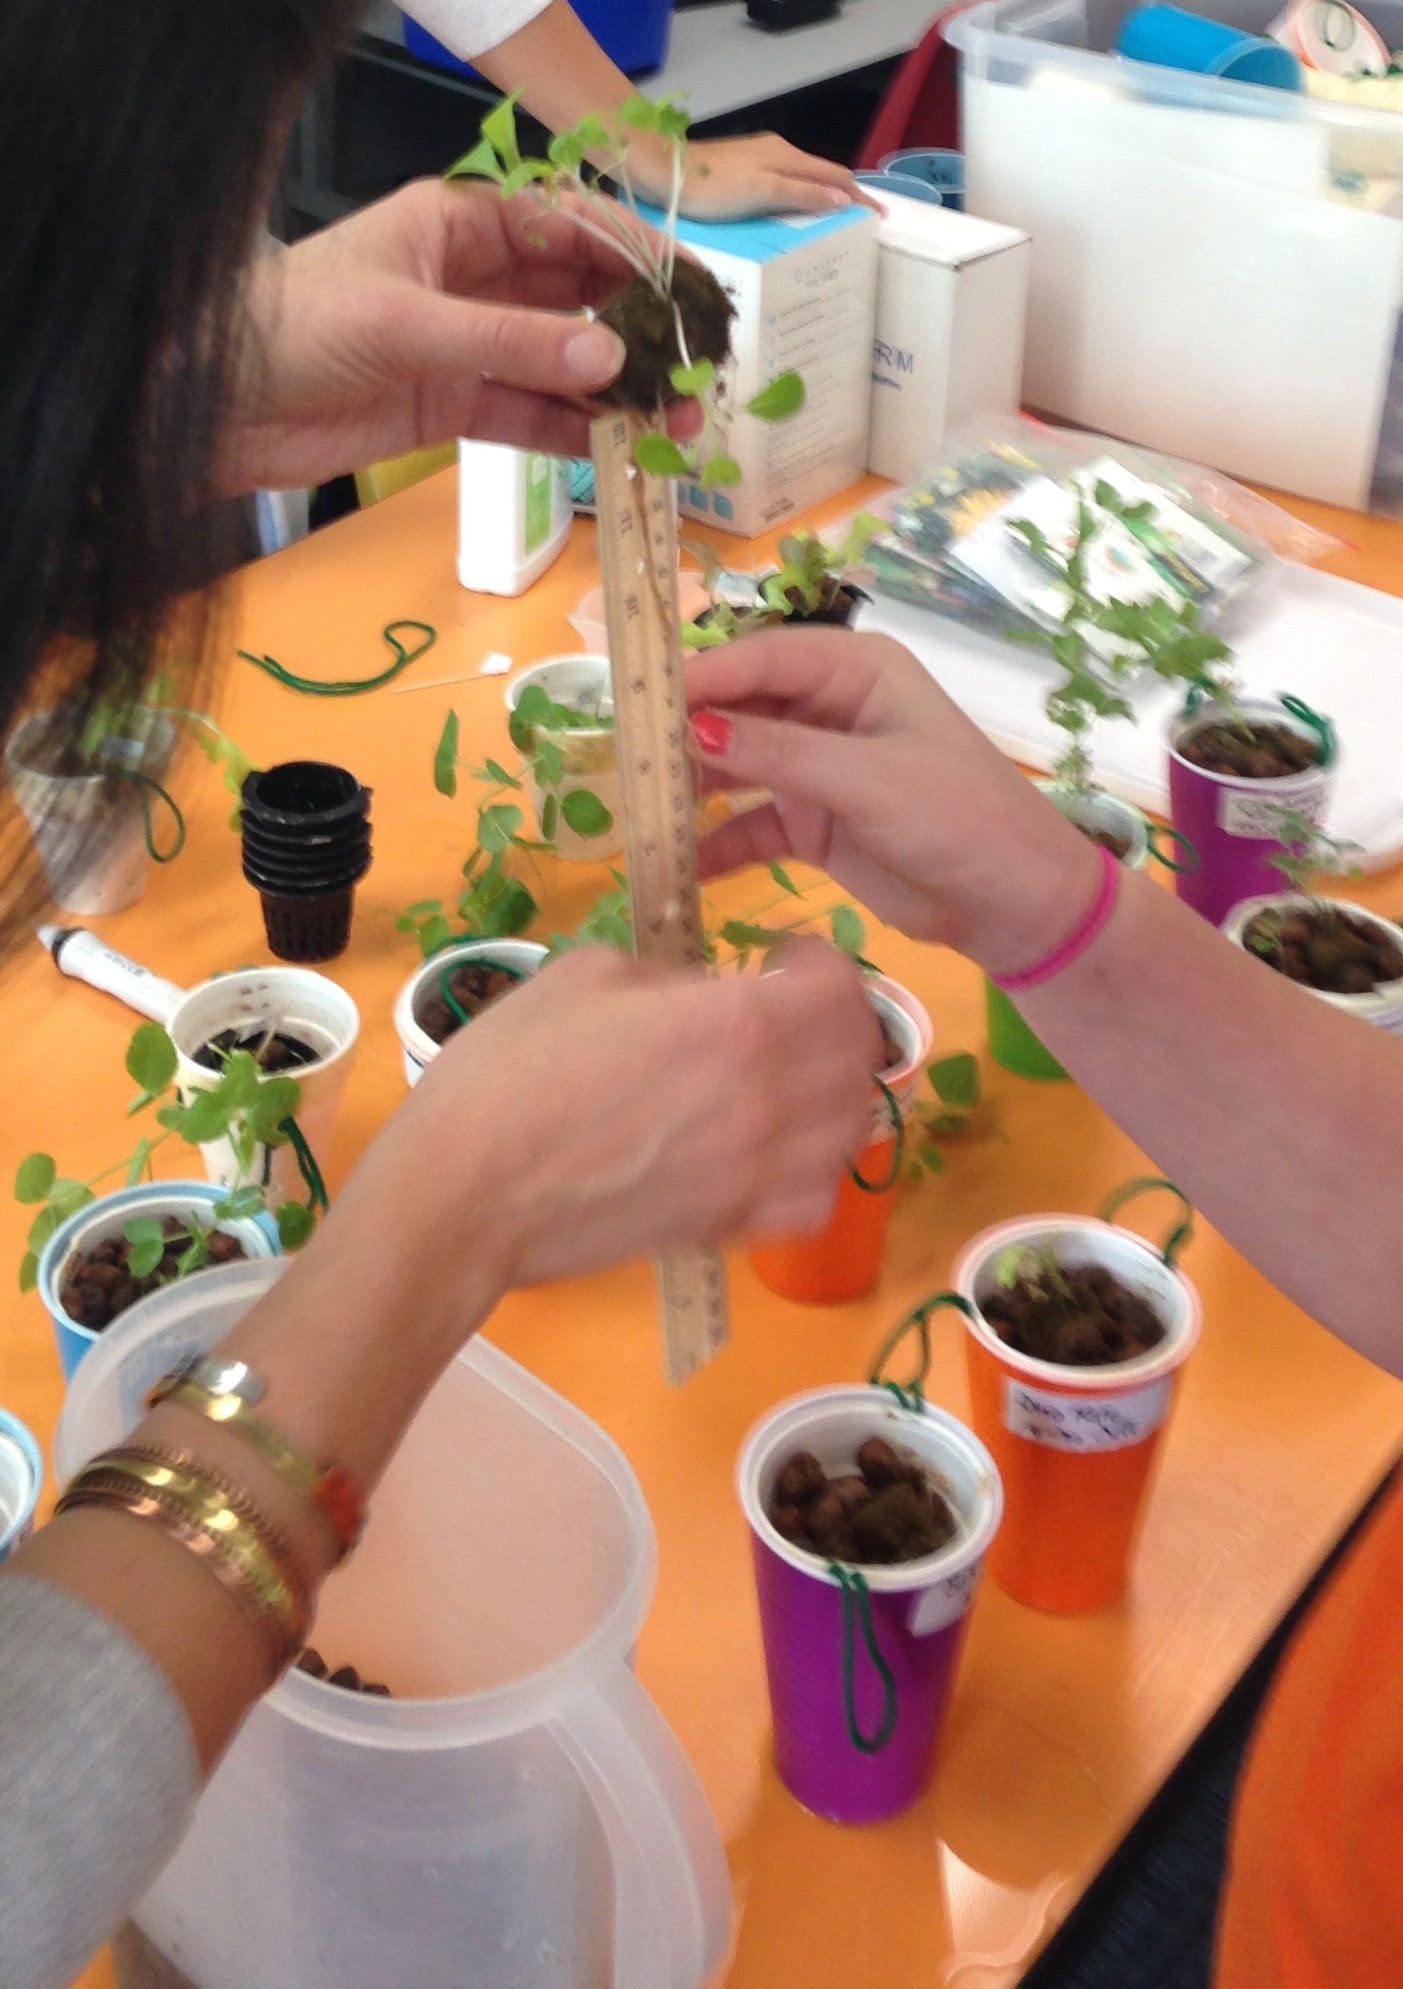 Cups spread across classroom table. Plant roots being measured with a ruler.